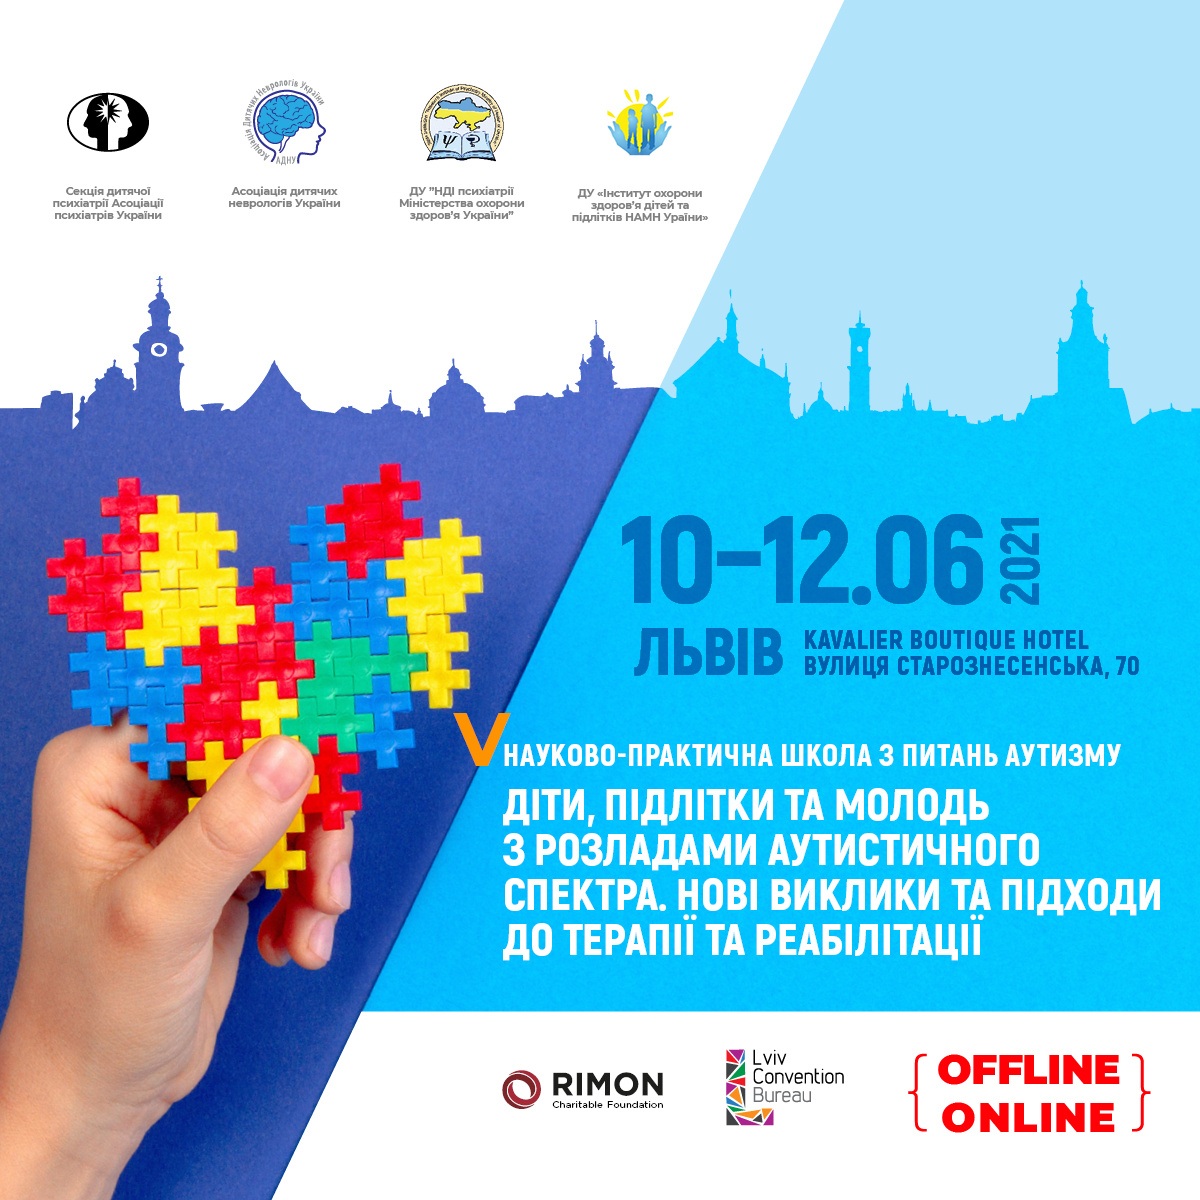 'Autism Europe' Consul Inna Sergienko will take part in the 5th scientific and practical school on autism